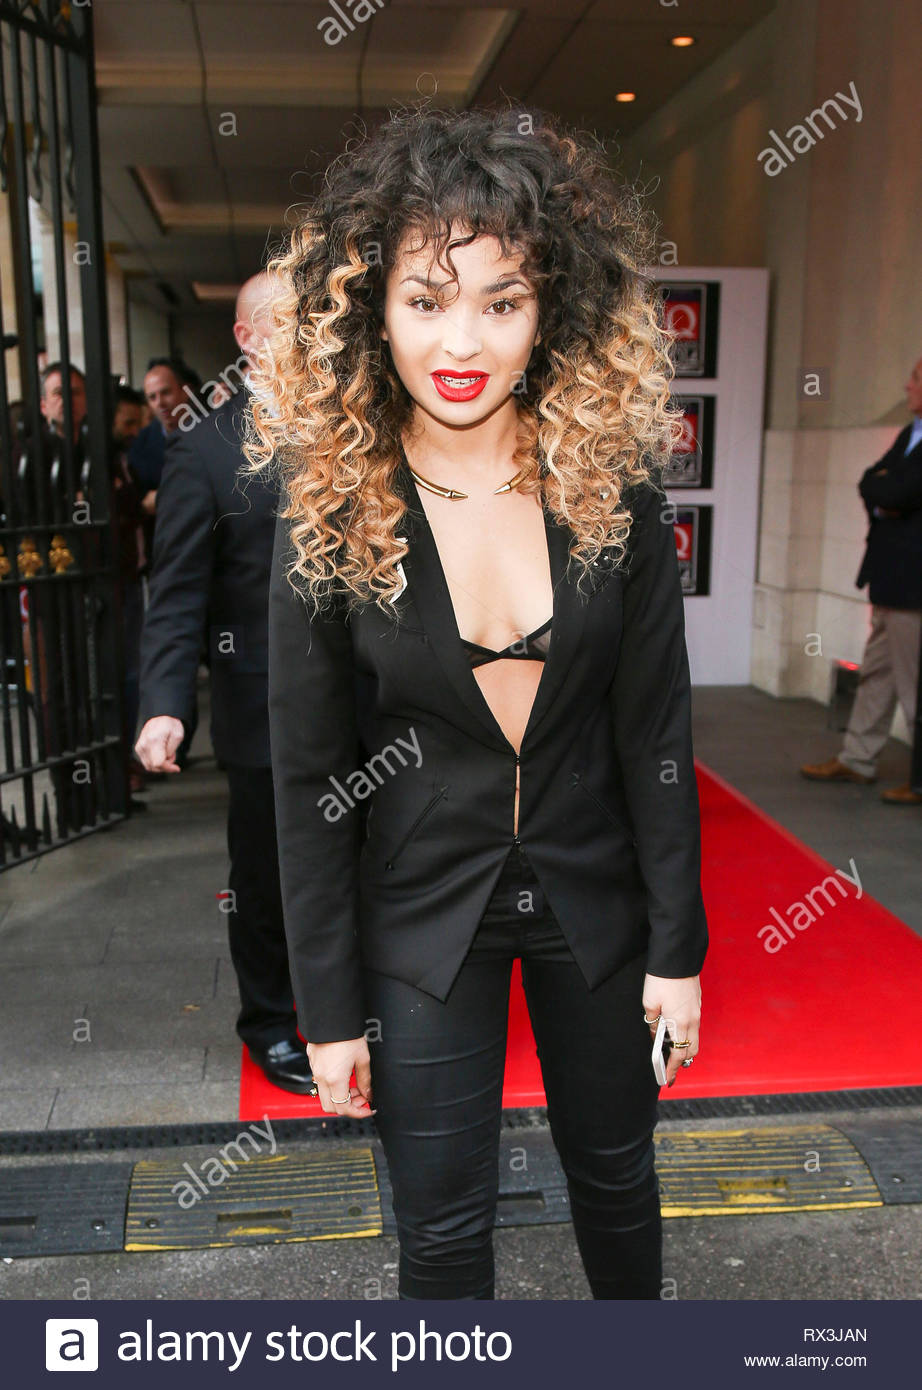 89a4e746e OCTOBER.2014 - LONDON - UK ELLA EYRE VIPS ARRIVE FOR XPERIA ACCESS Q AWARDS  AT GROVSNER HOUSE LONDON PLEASE CREDIT   PETTS-MOORE   XPOSUREPHOTOS.